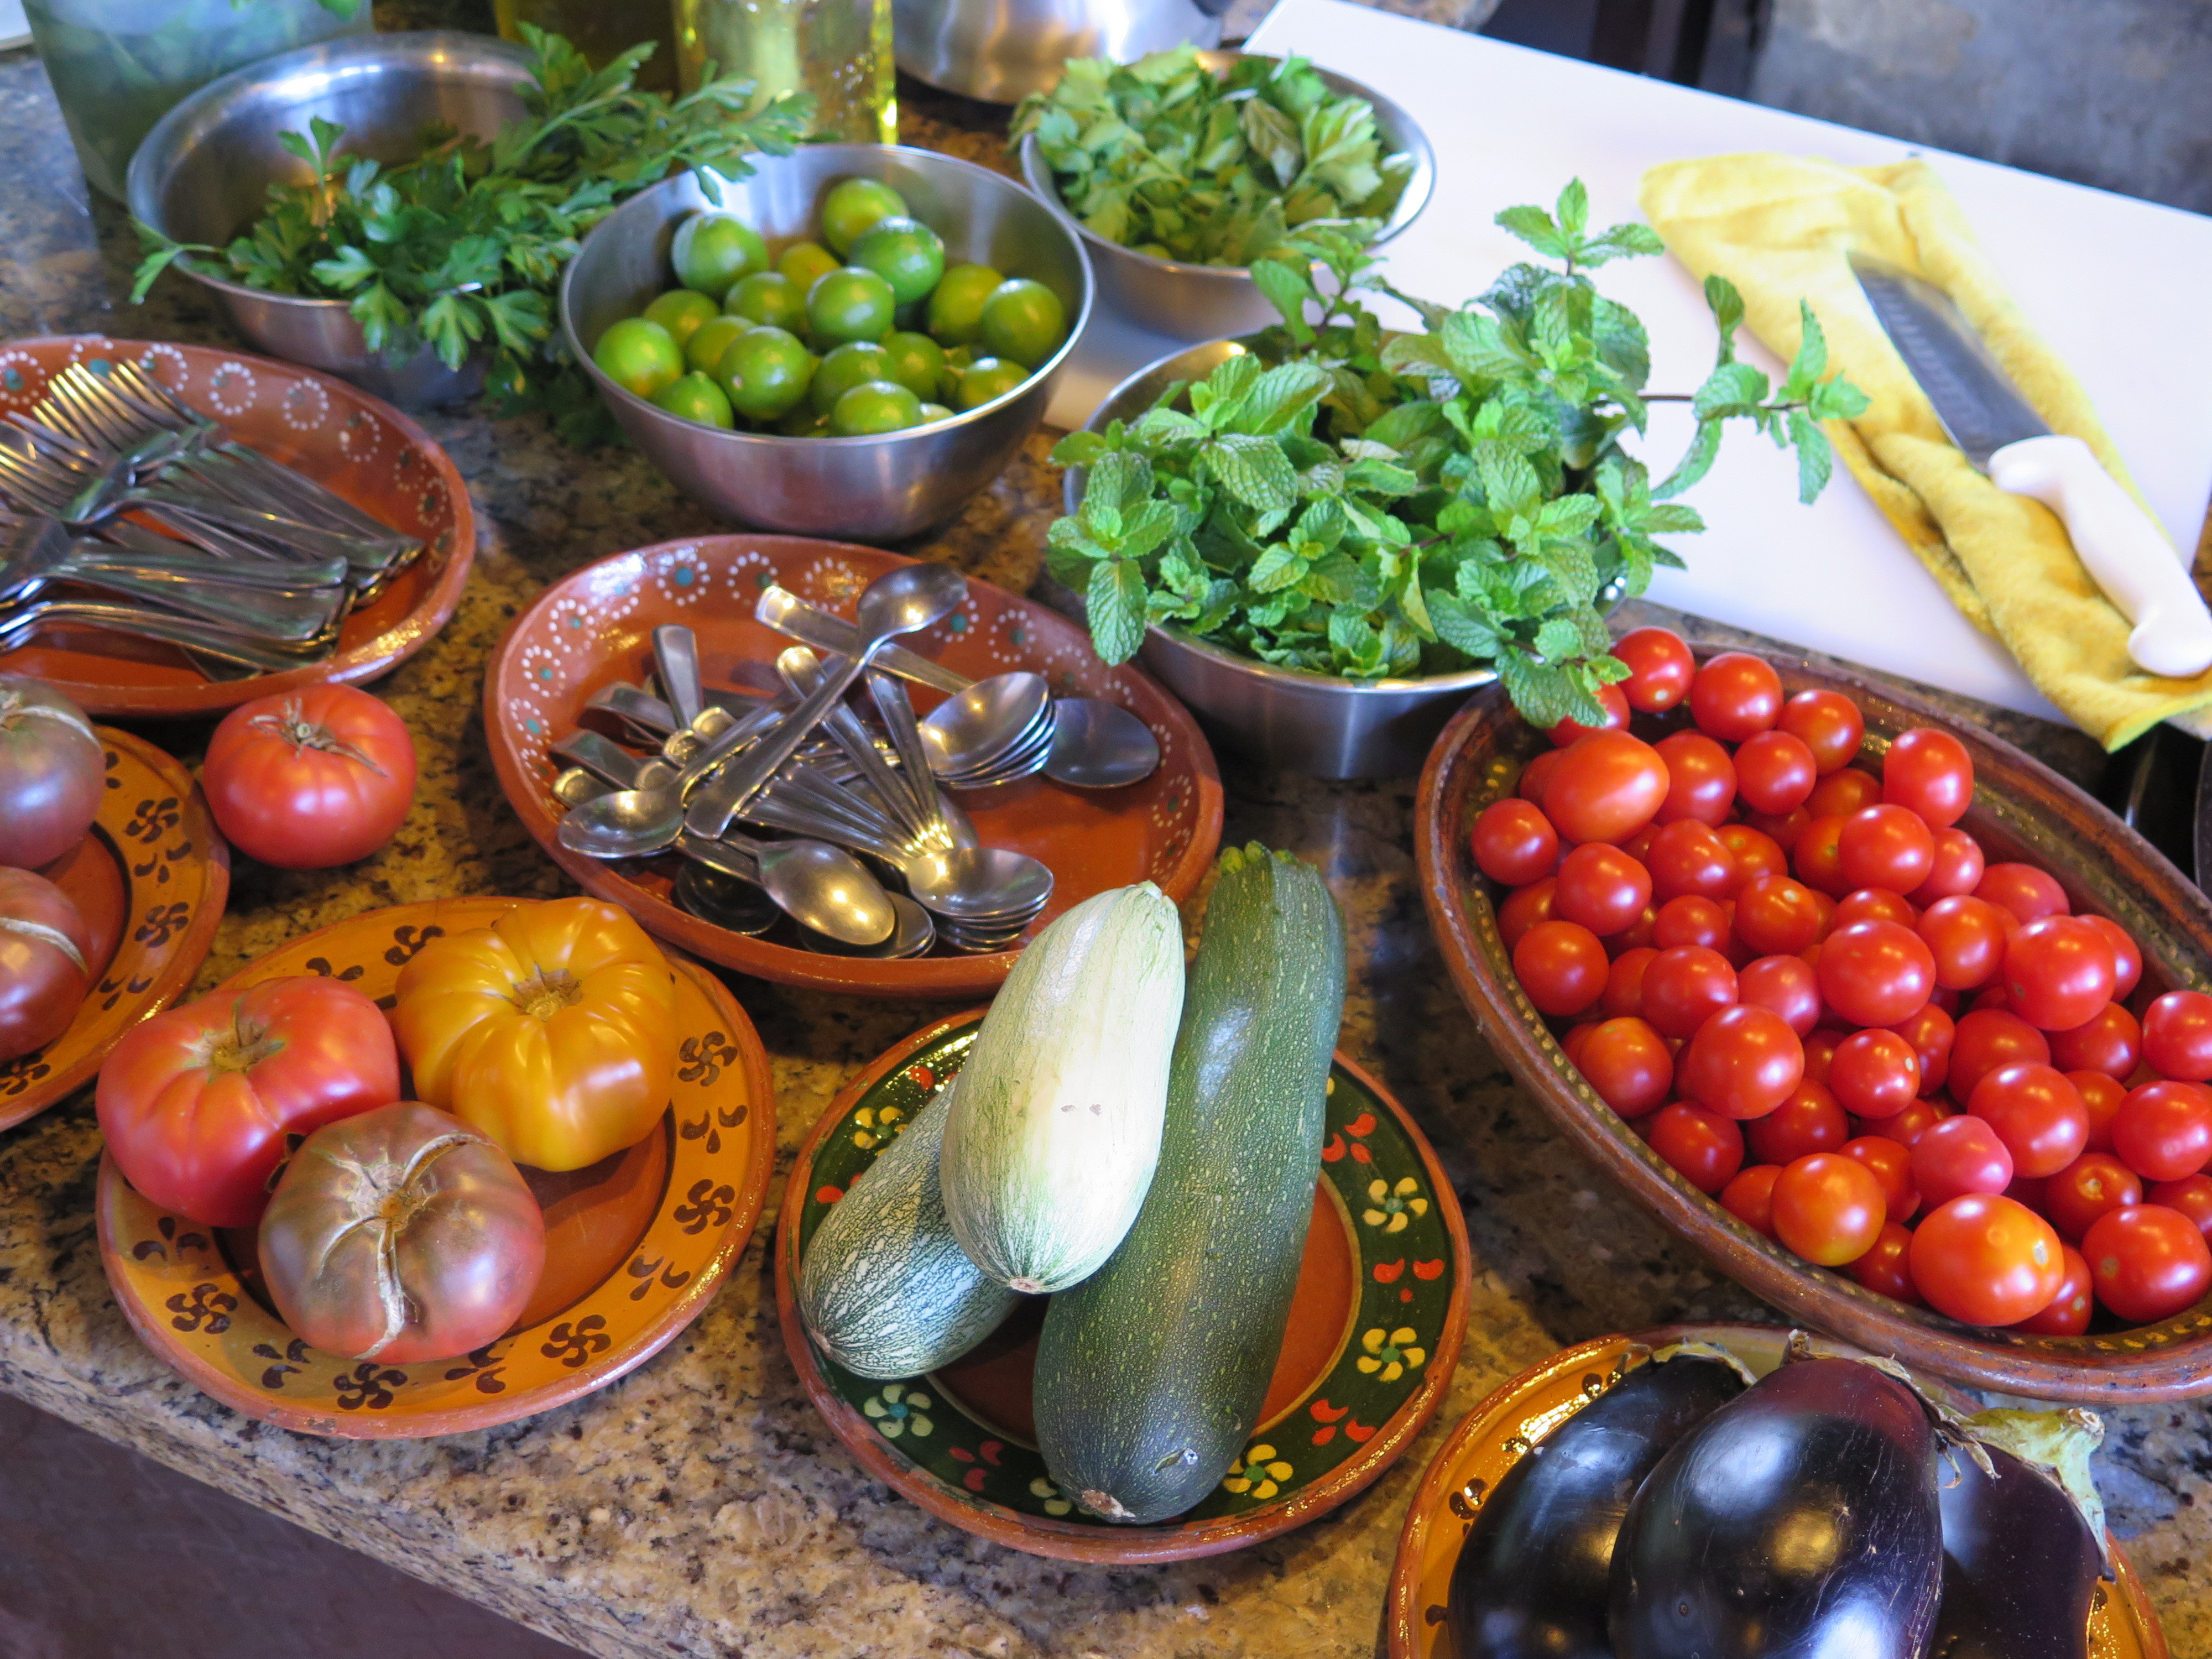 One&Only Palmilla can set you up with a visit to a wonderful local farm and restaurant called Los Tamarindos, where you can make a meal or bottle your own salad dressing.